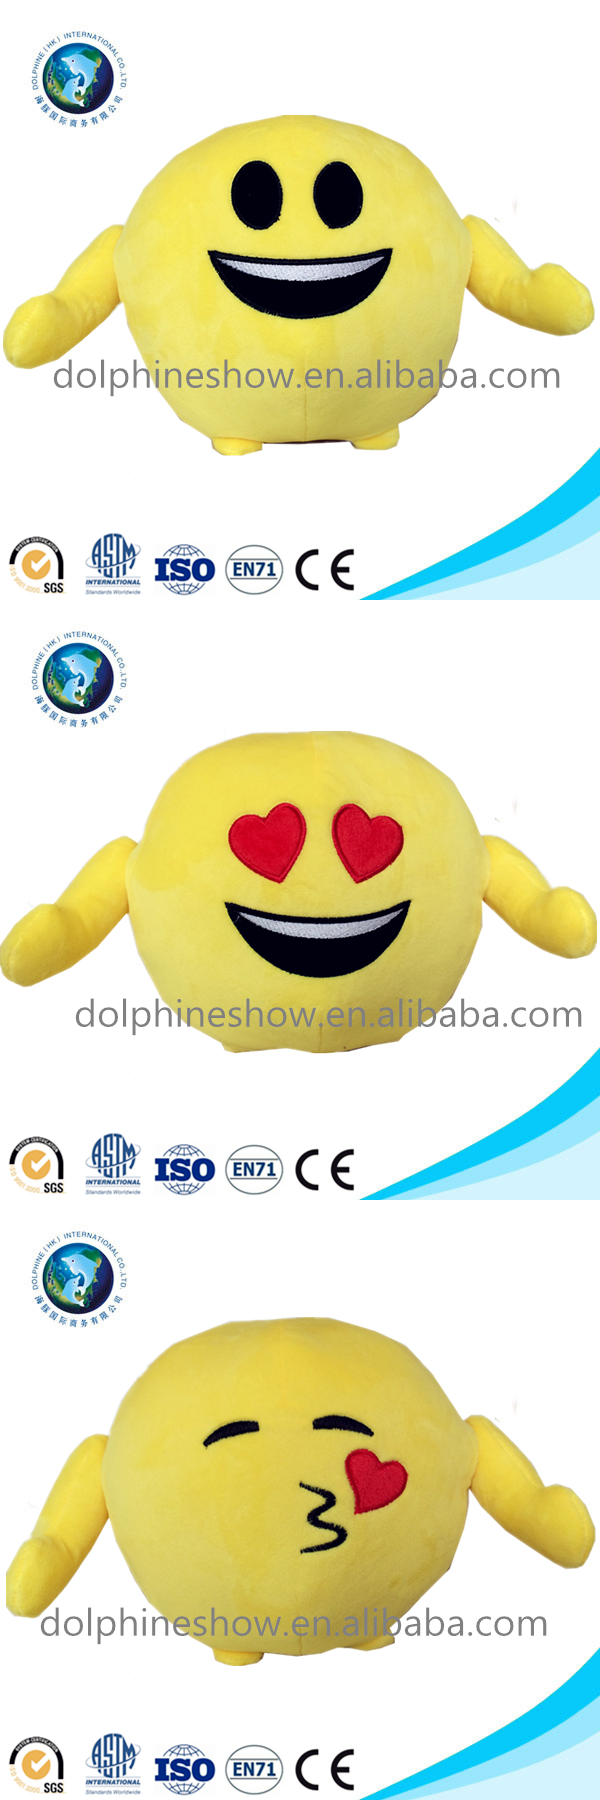 Different types custom cute emoji pillow cushion doll cheap stuffed soft toy plush emoji pillow